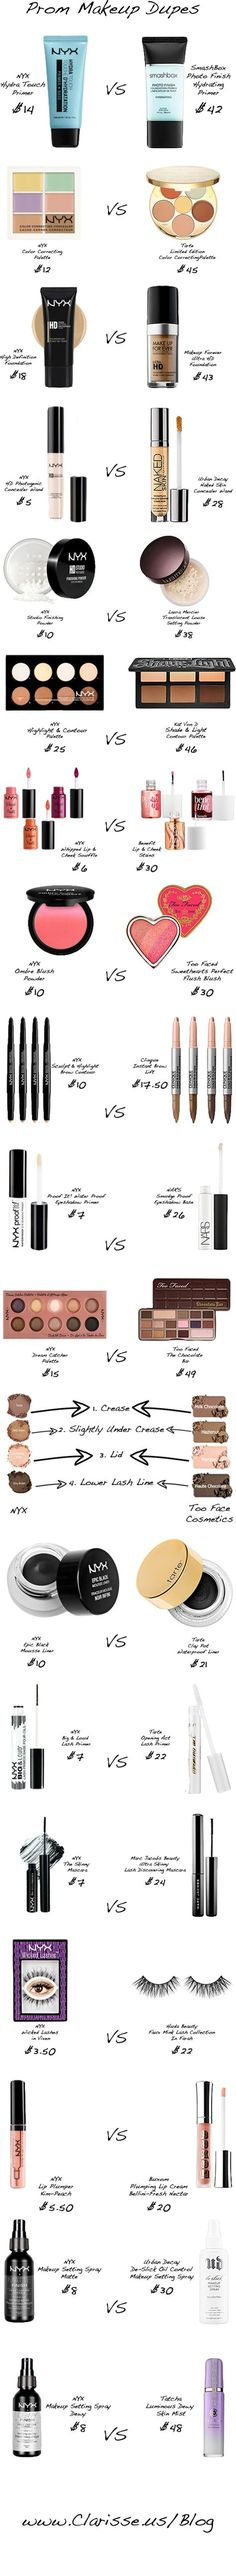 Looking for the best drugstore makeup dupes?  This article covers foundation, lipsticks, mascara, concealer, and eyeliner.  Whether you want to try contouring or using eyeshadow, it's important to find drugstore dupes that are legit, not cheap.  Save money and make your eyes and lips pop with drugstore makeup, drugstore eyeliner, drugstore lipsticks, and stay on budget! www.thegoddess.com